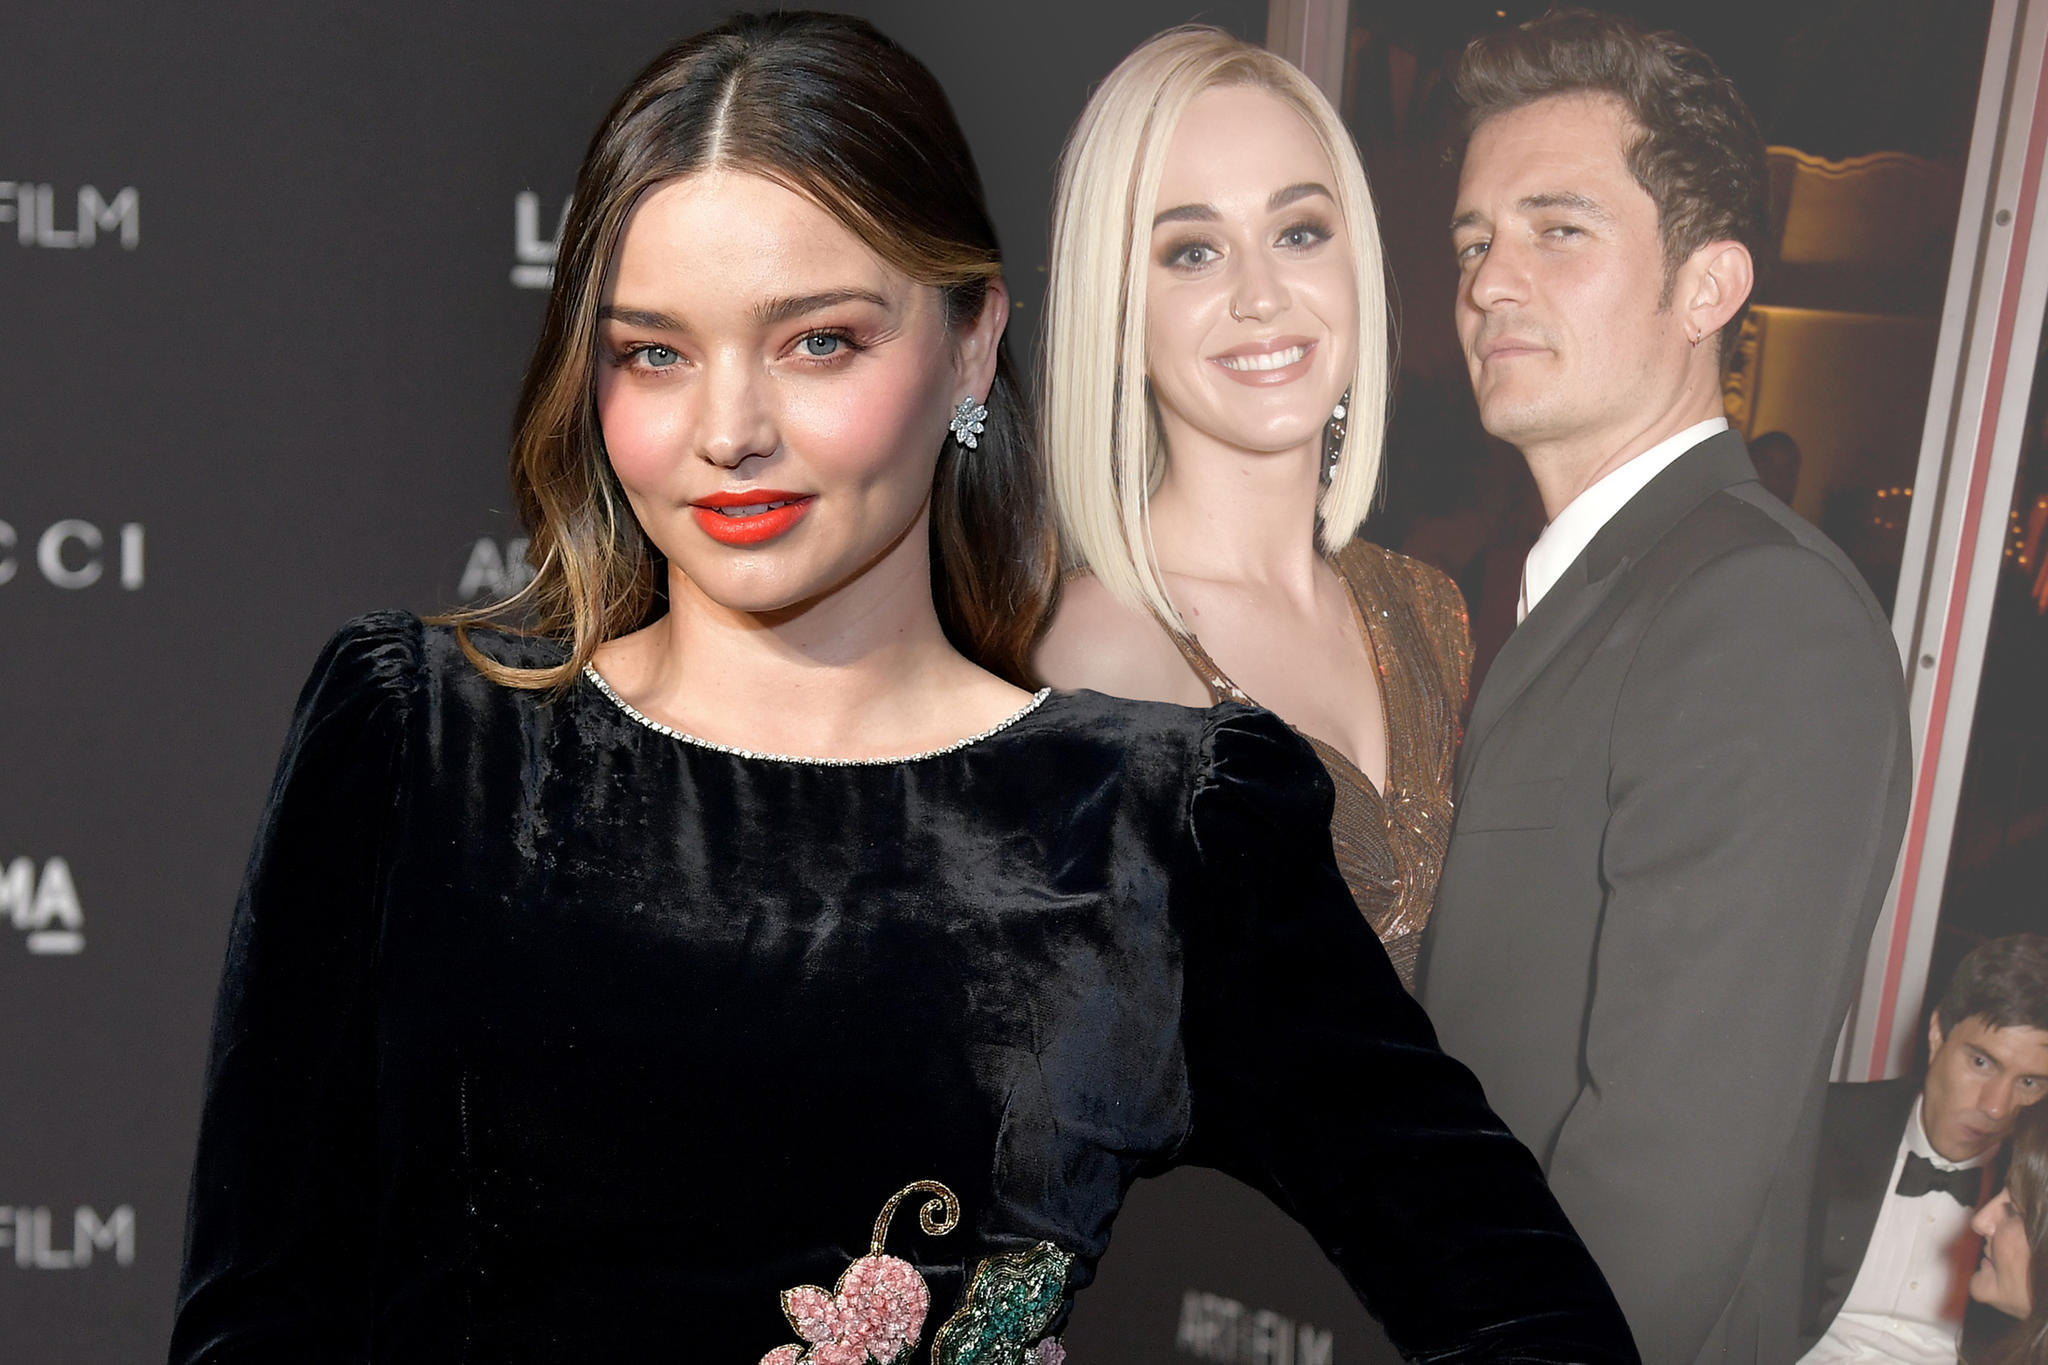 Miranda Kerr, Katy Perry + Orlando Bloom